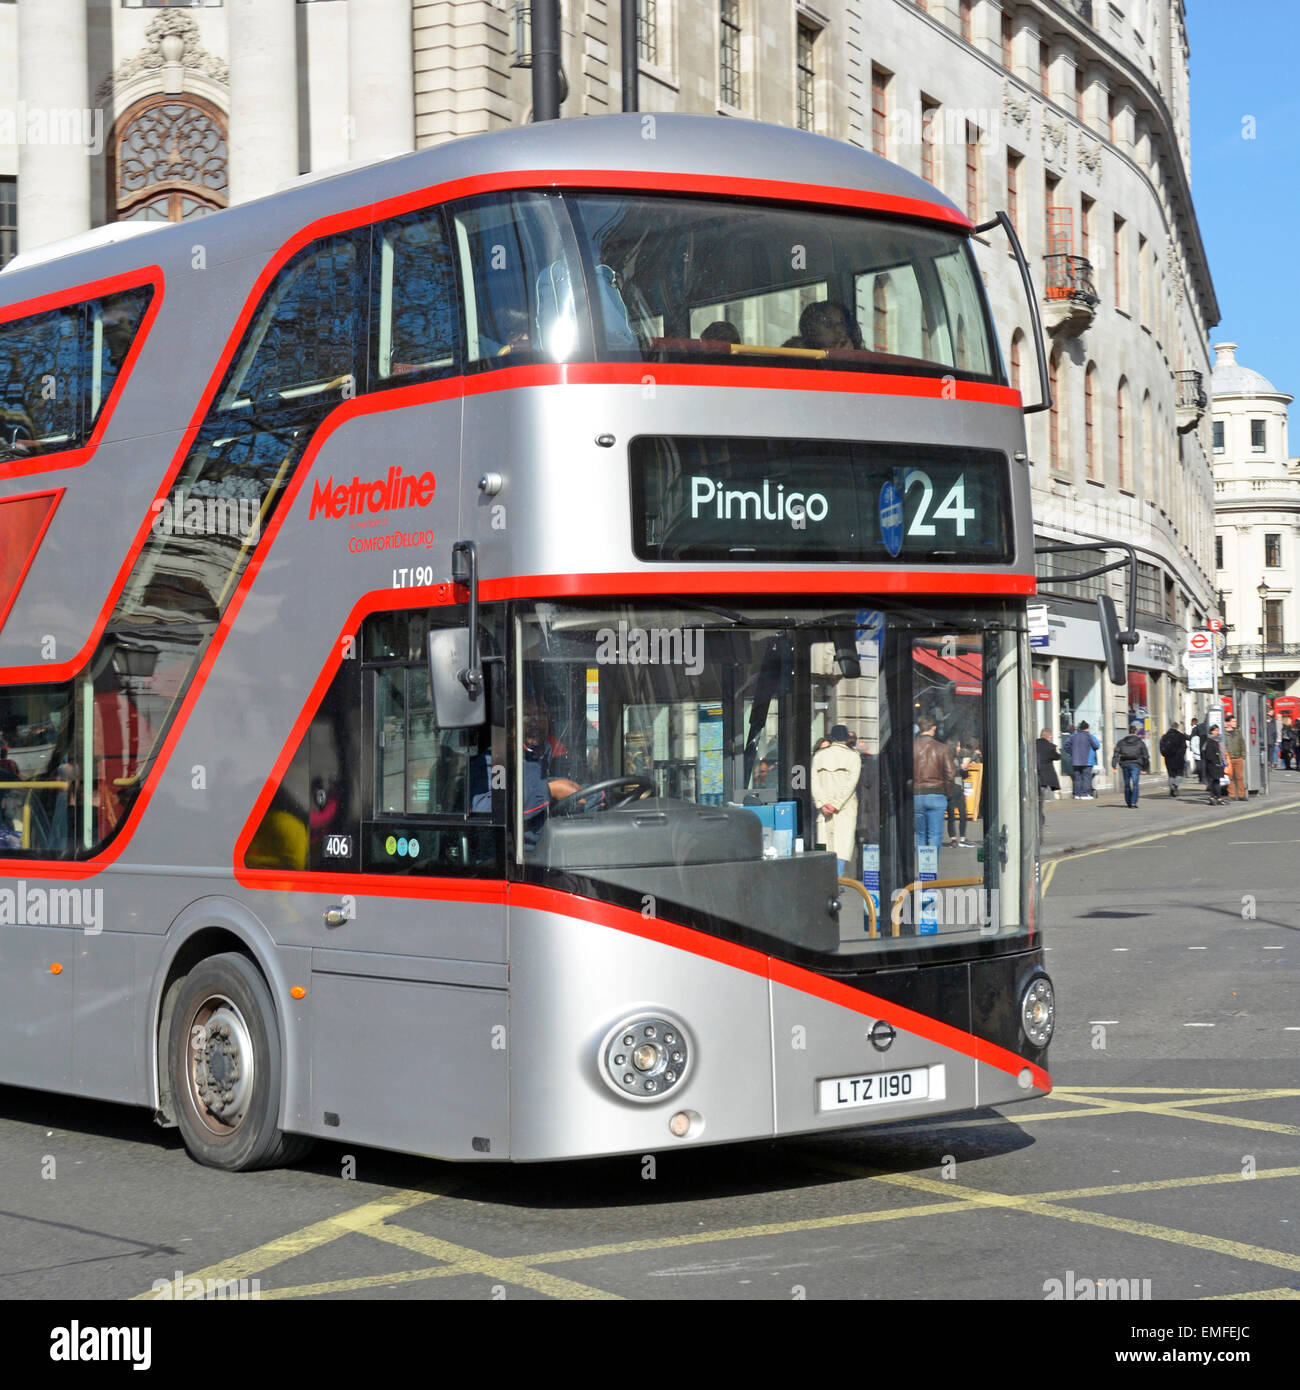 Silver edition of new London Routemaster Boris bus operated by Metroline on route 24 running to Pimlico London England Stock Photo